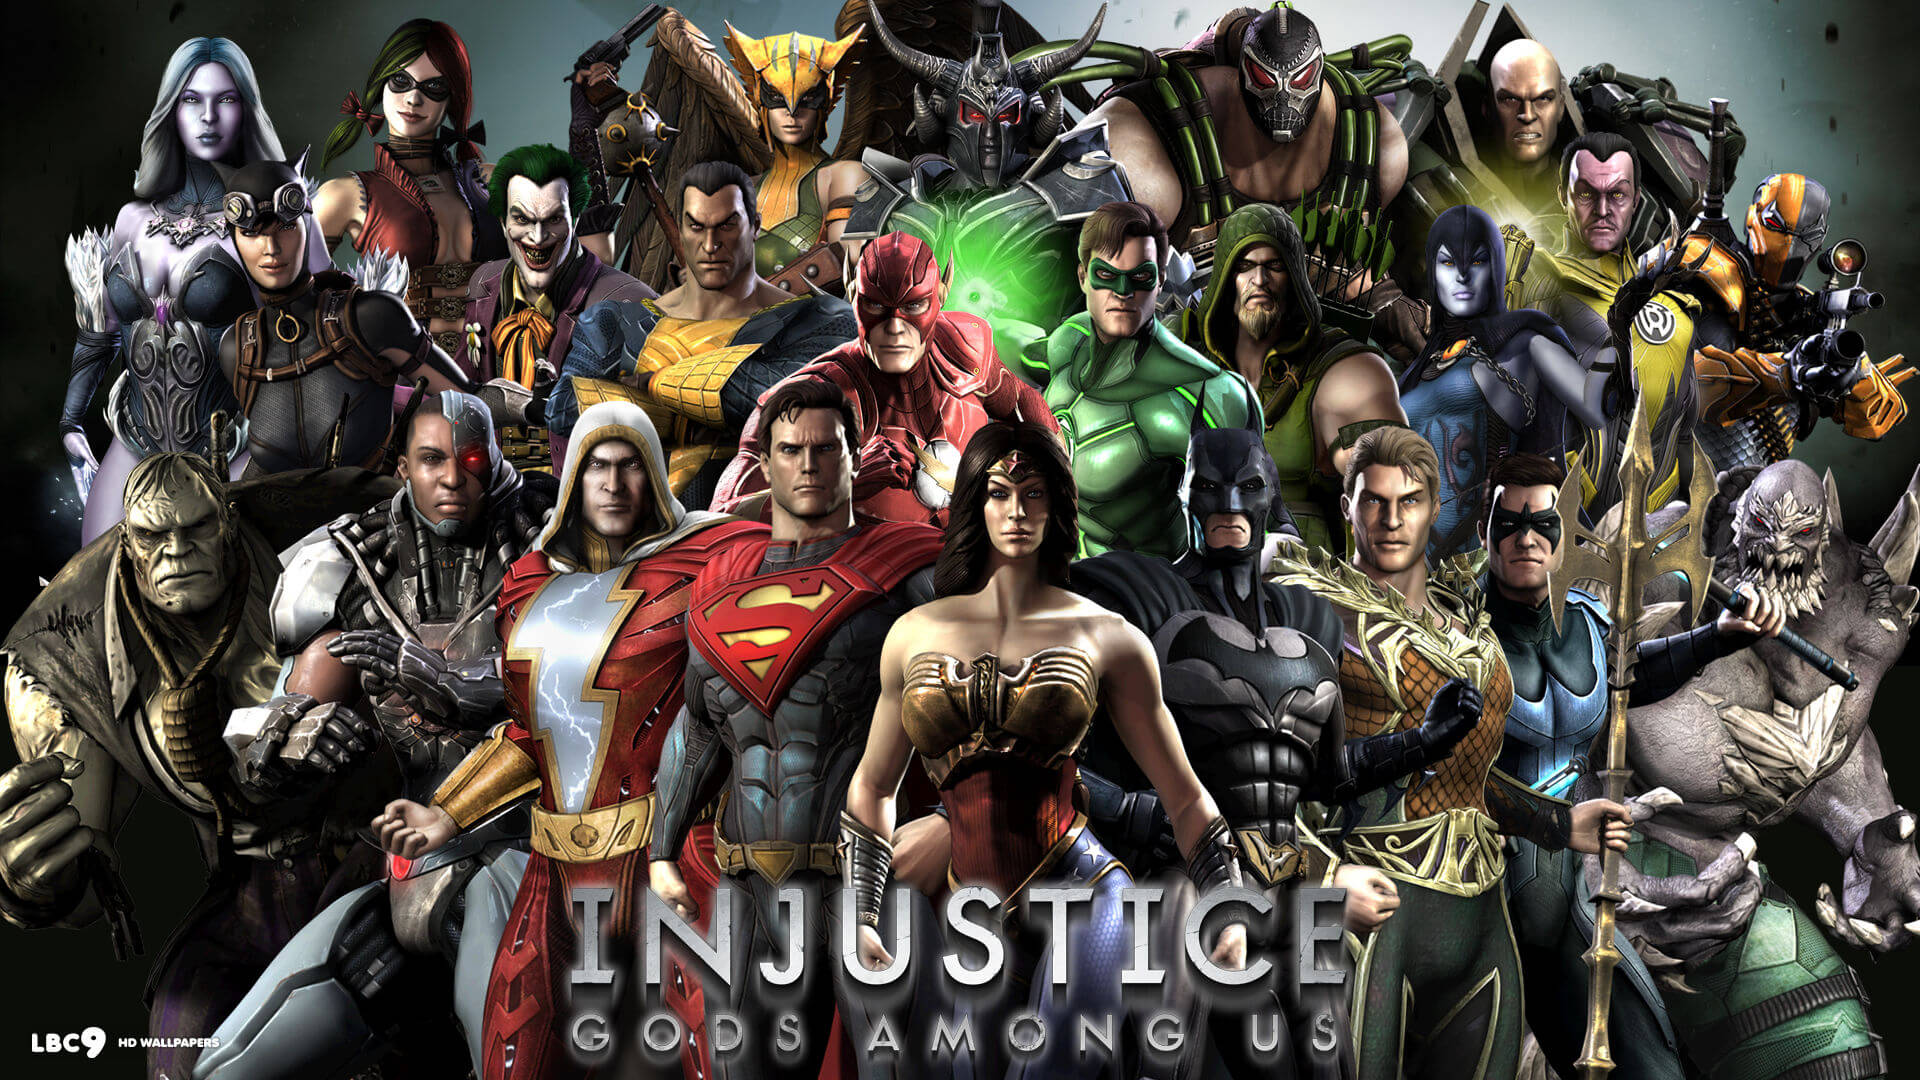 Injustice: Gods Among Us Cheats and Trainers - Video Games